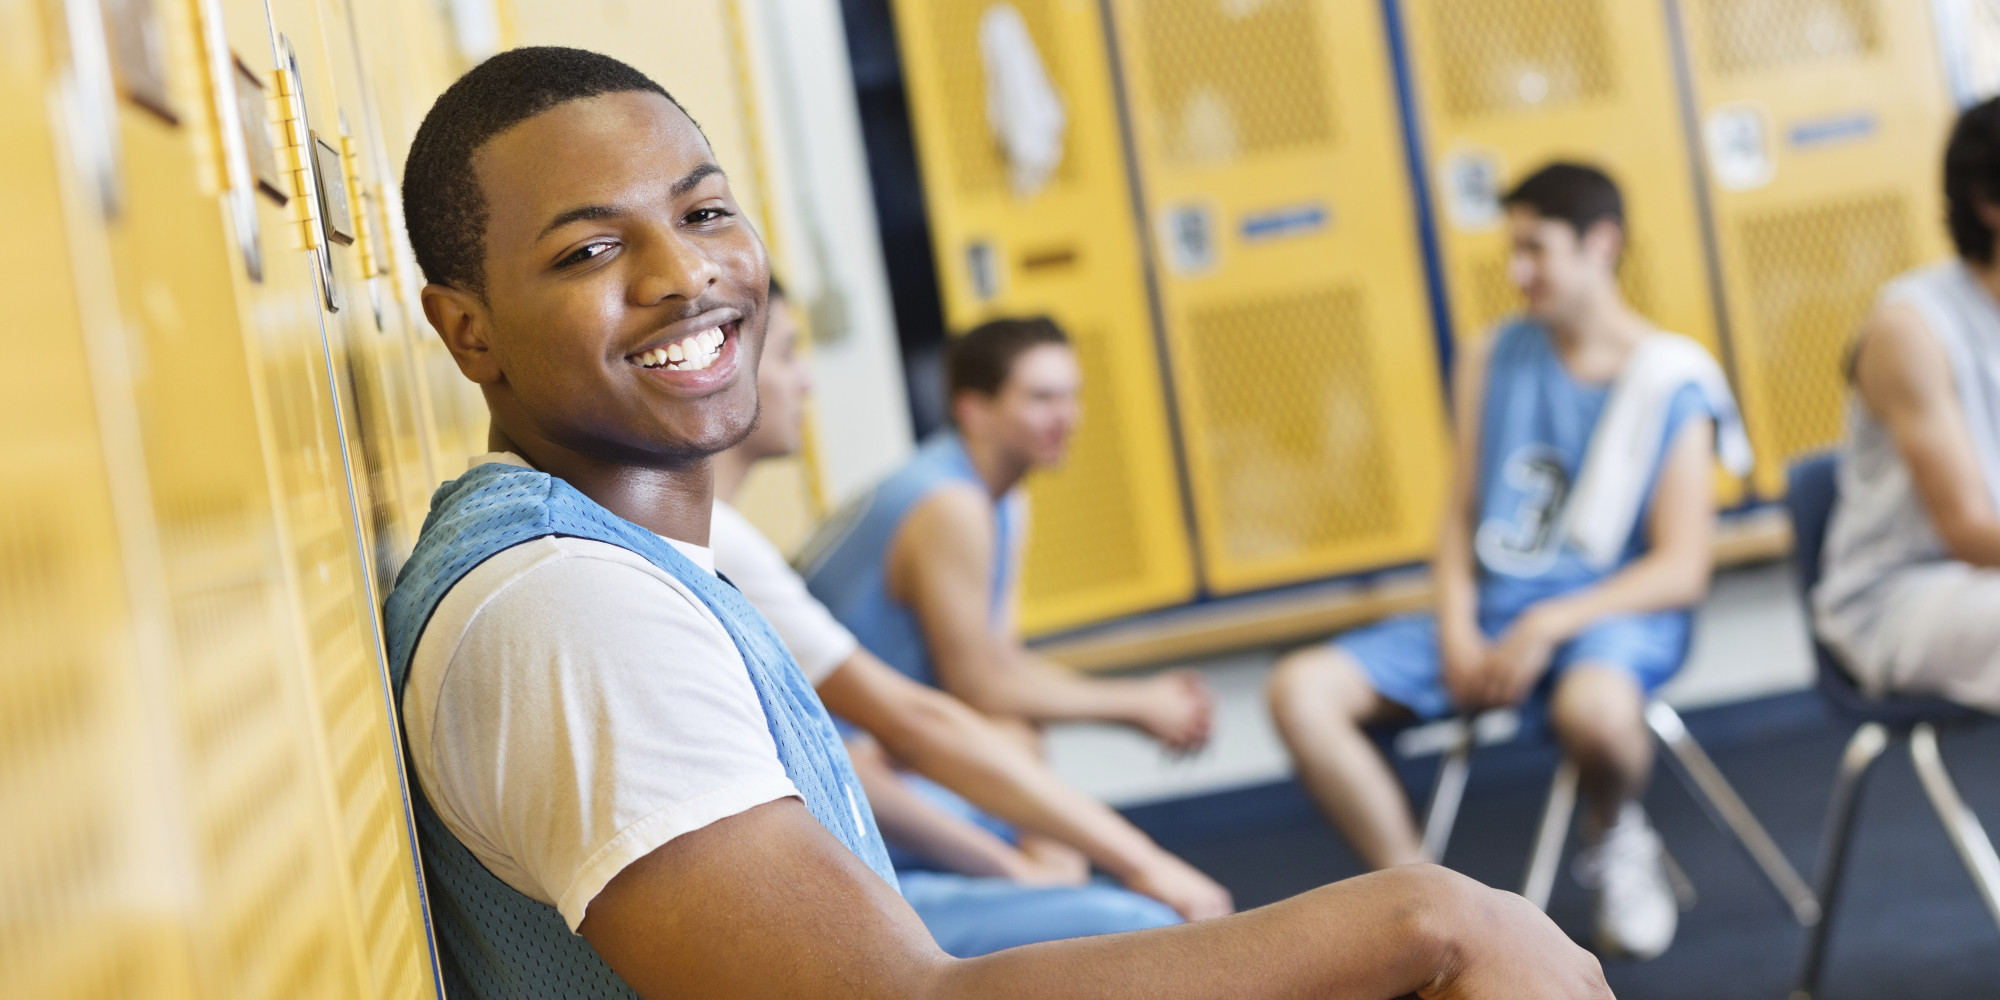 Article high school sports - Increased Higher education Pictures